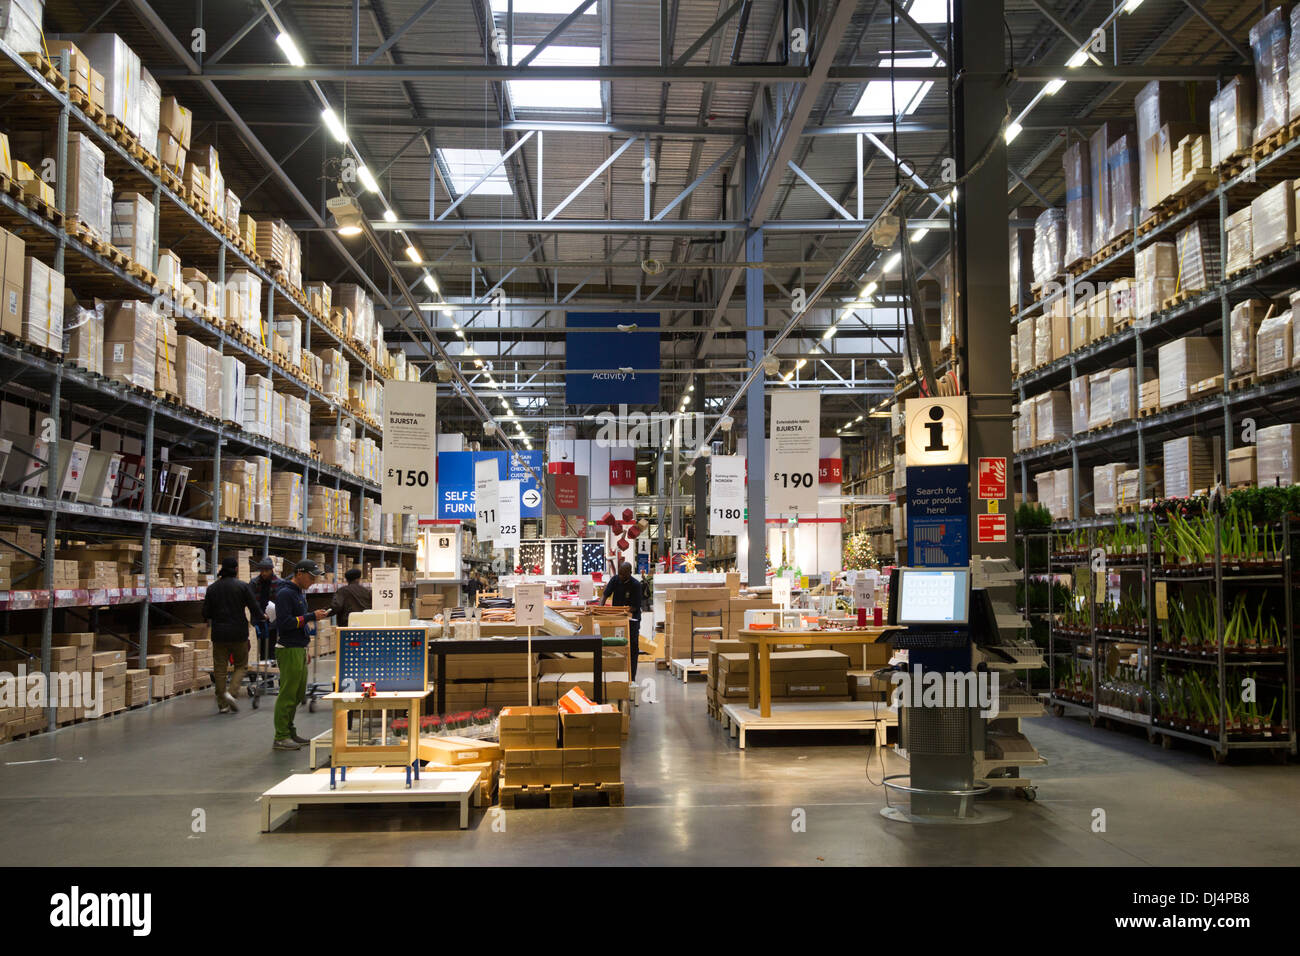 Ikea Self-Service Collection Isles - Edmonton - London - Stock Image